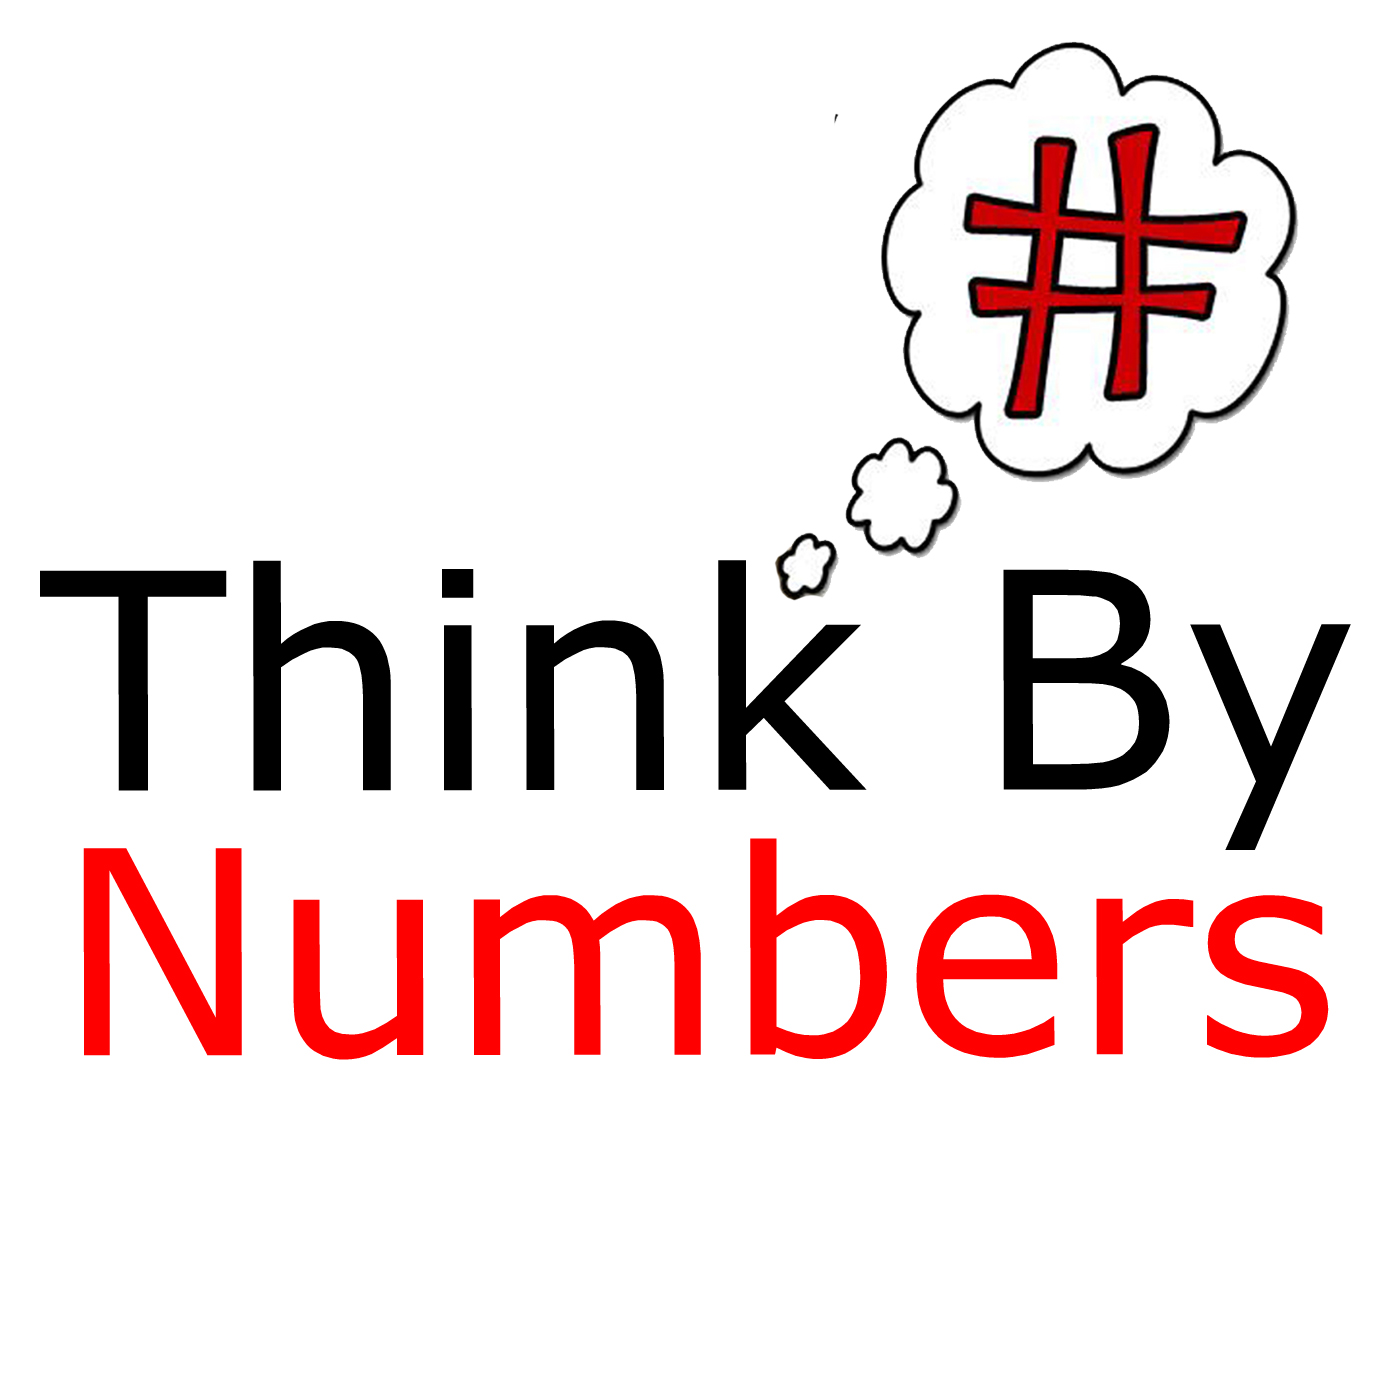 Think by Numbers